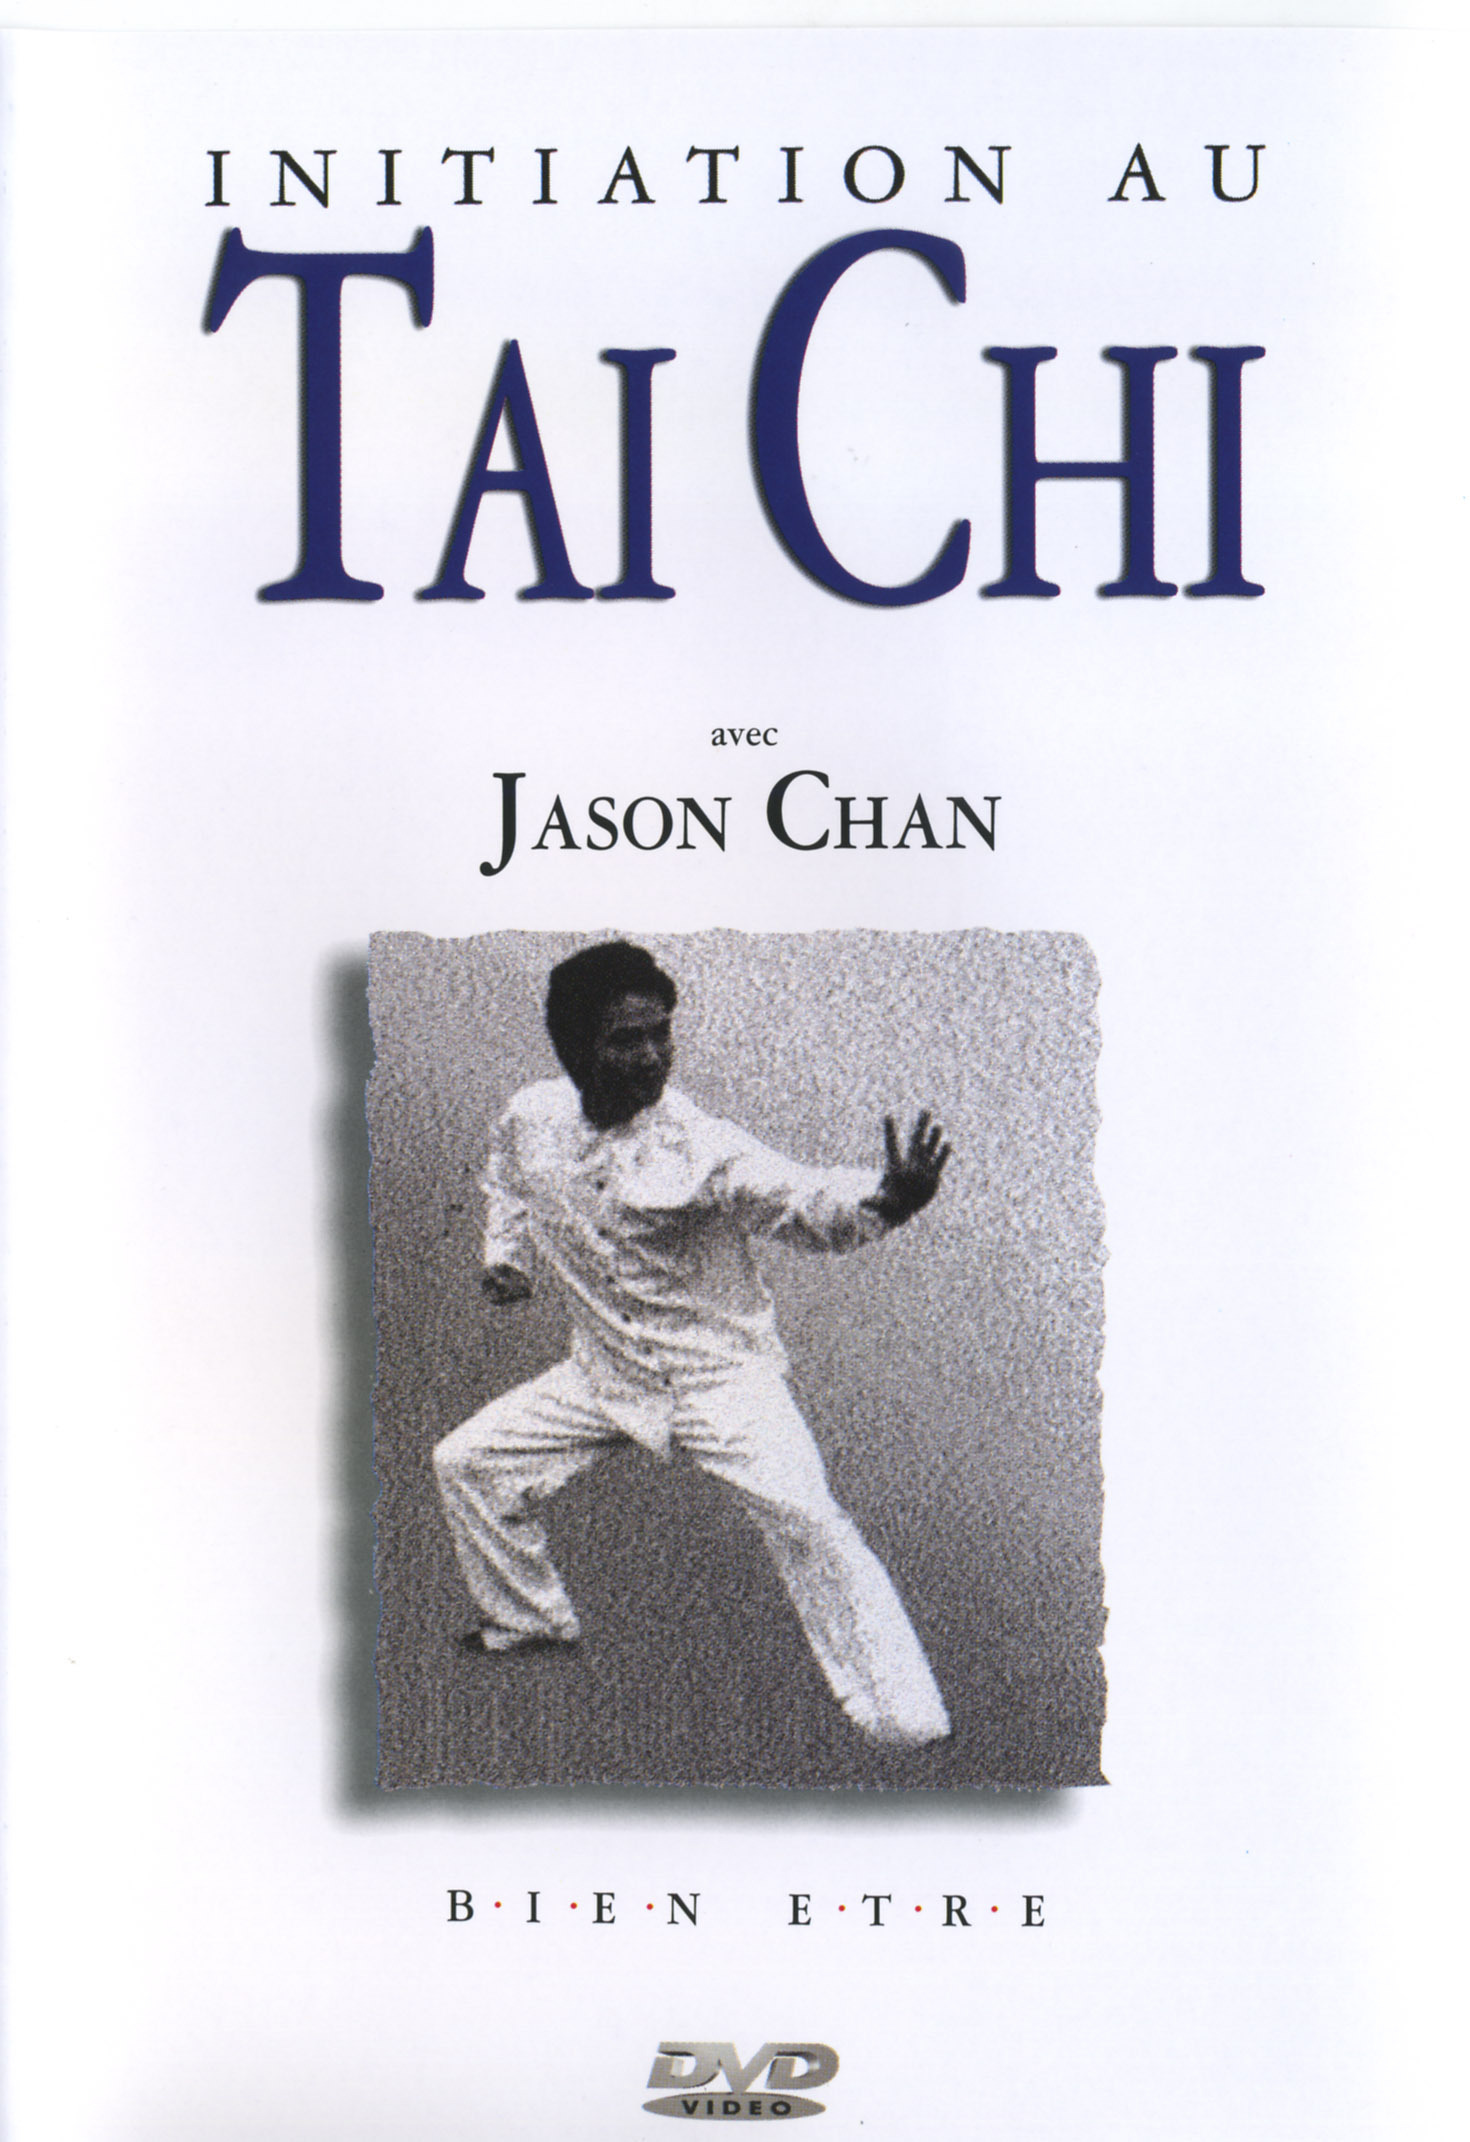 TAI CHI INITIATION - DVD